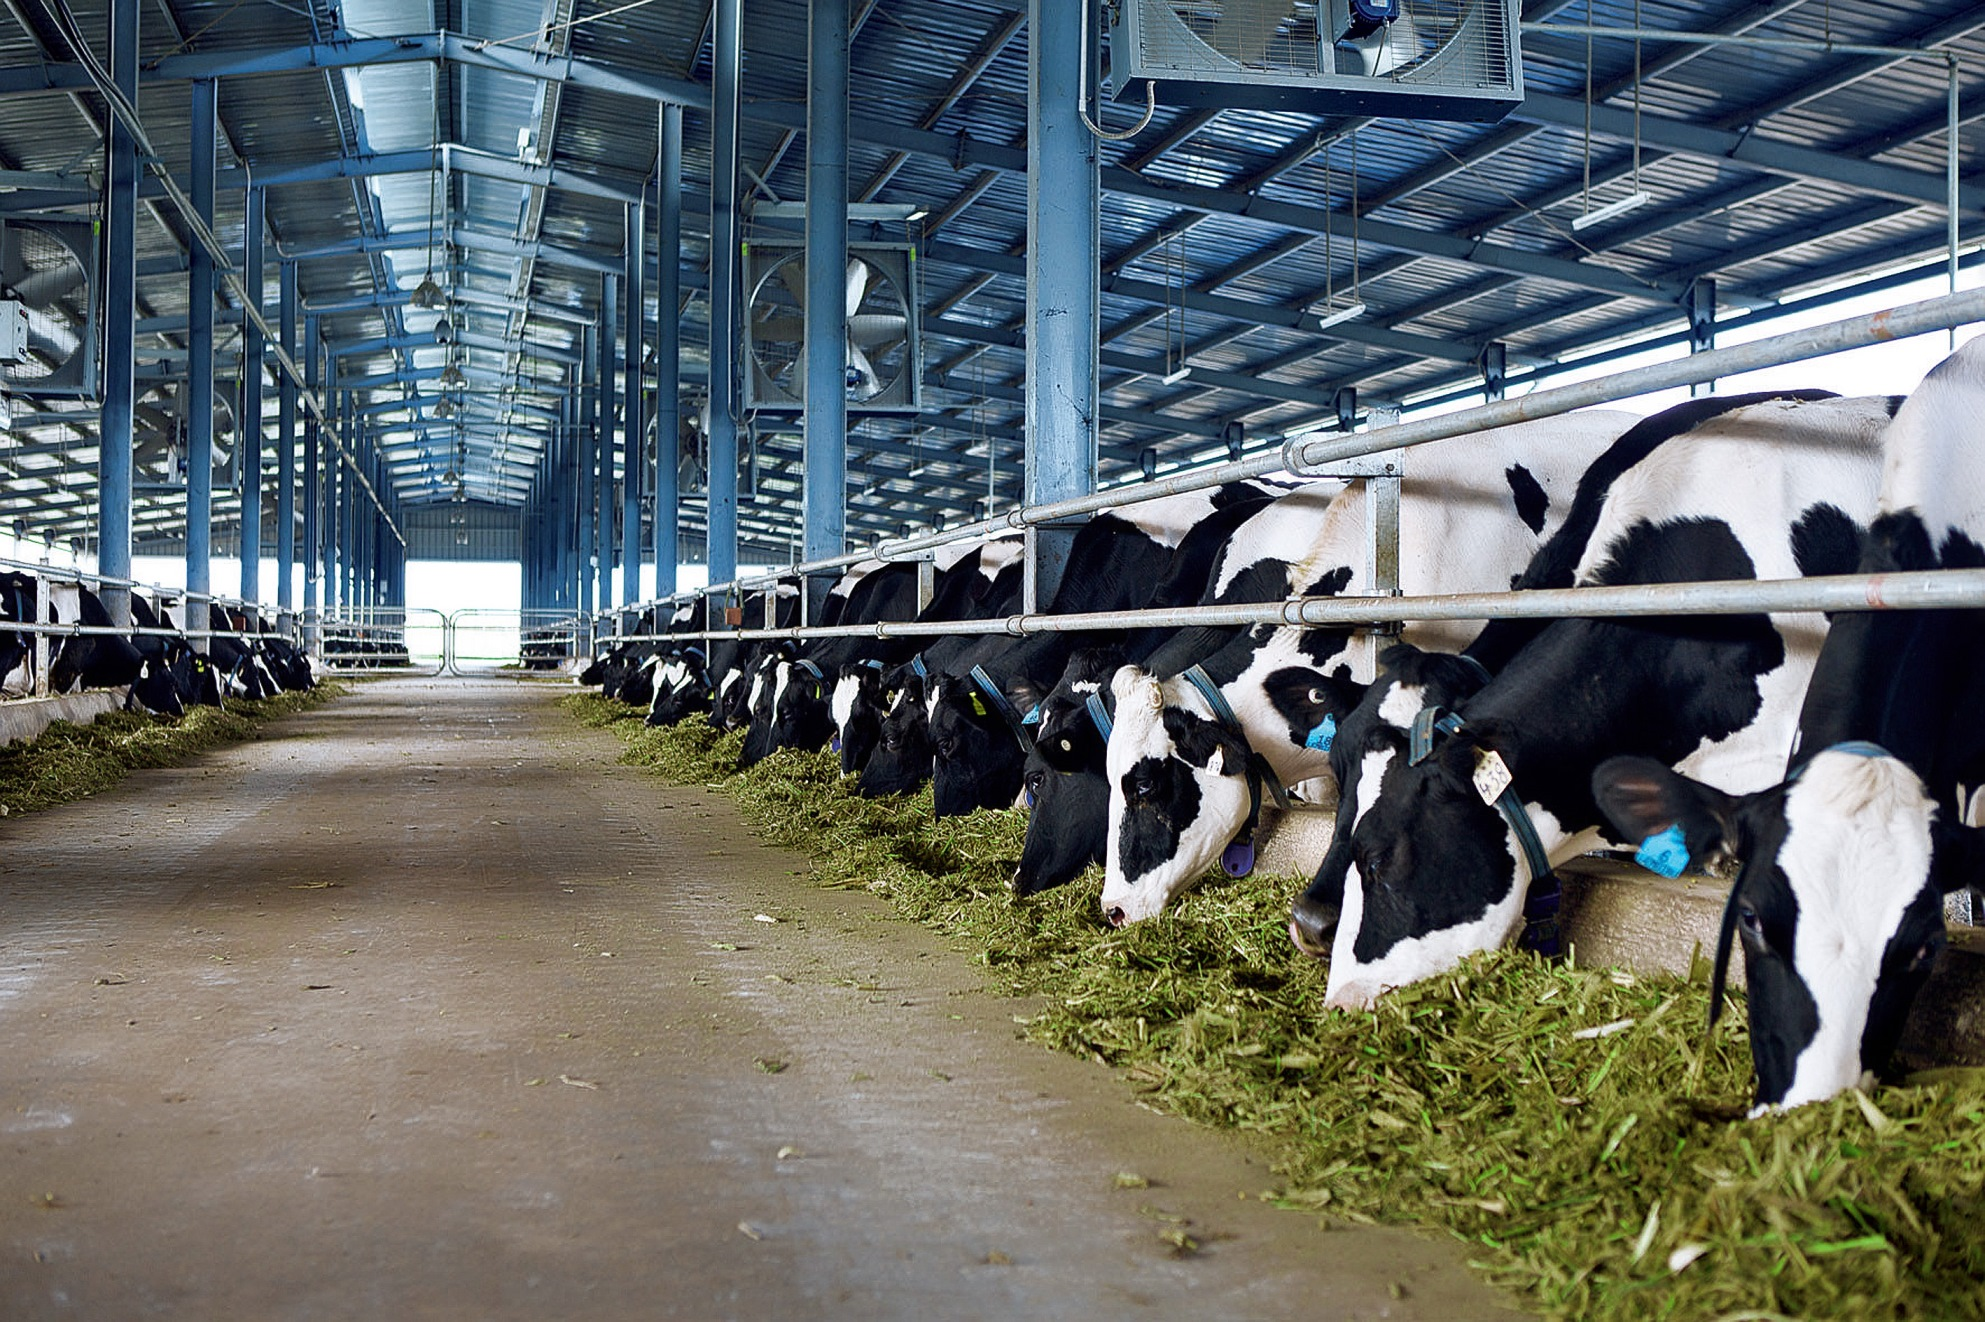 5000268824 - VIETNAM DAIRY COW ONE-MEMBER COMPANY LIMITED